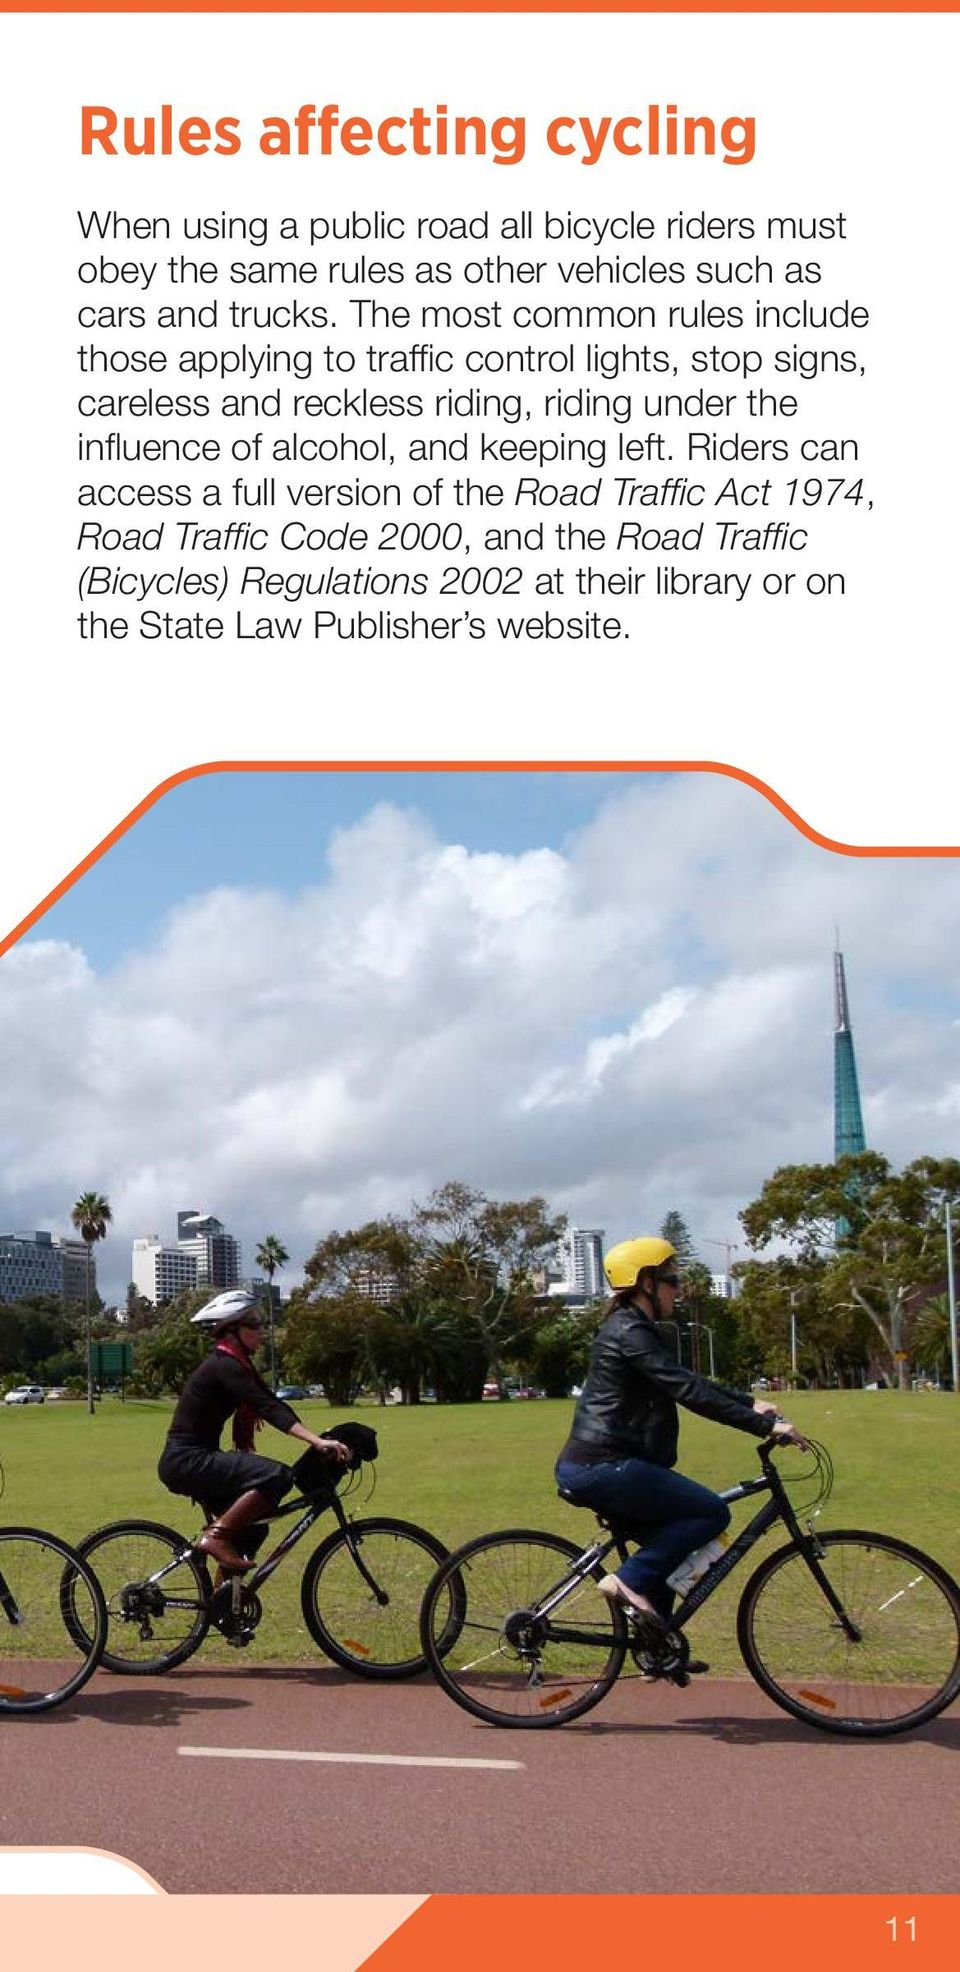 The most common rules include those applying to traffic control lights, stop signs, careless and reckless riding, riding